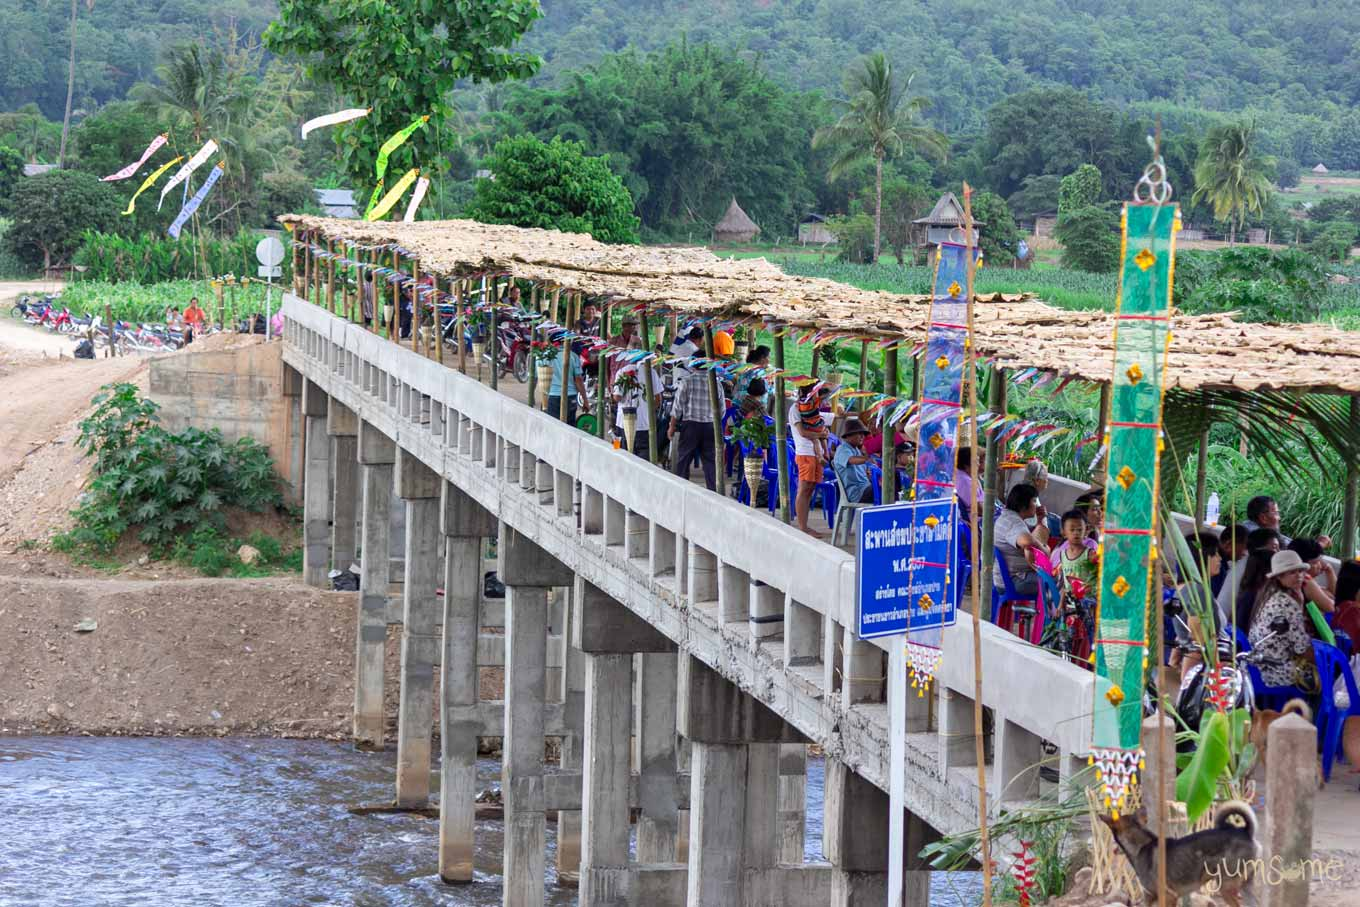 Concrete bridge over a river, with lots of floral and bamboo decoration.